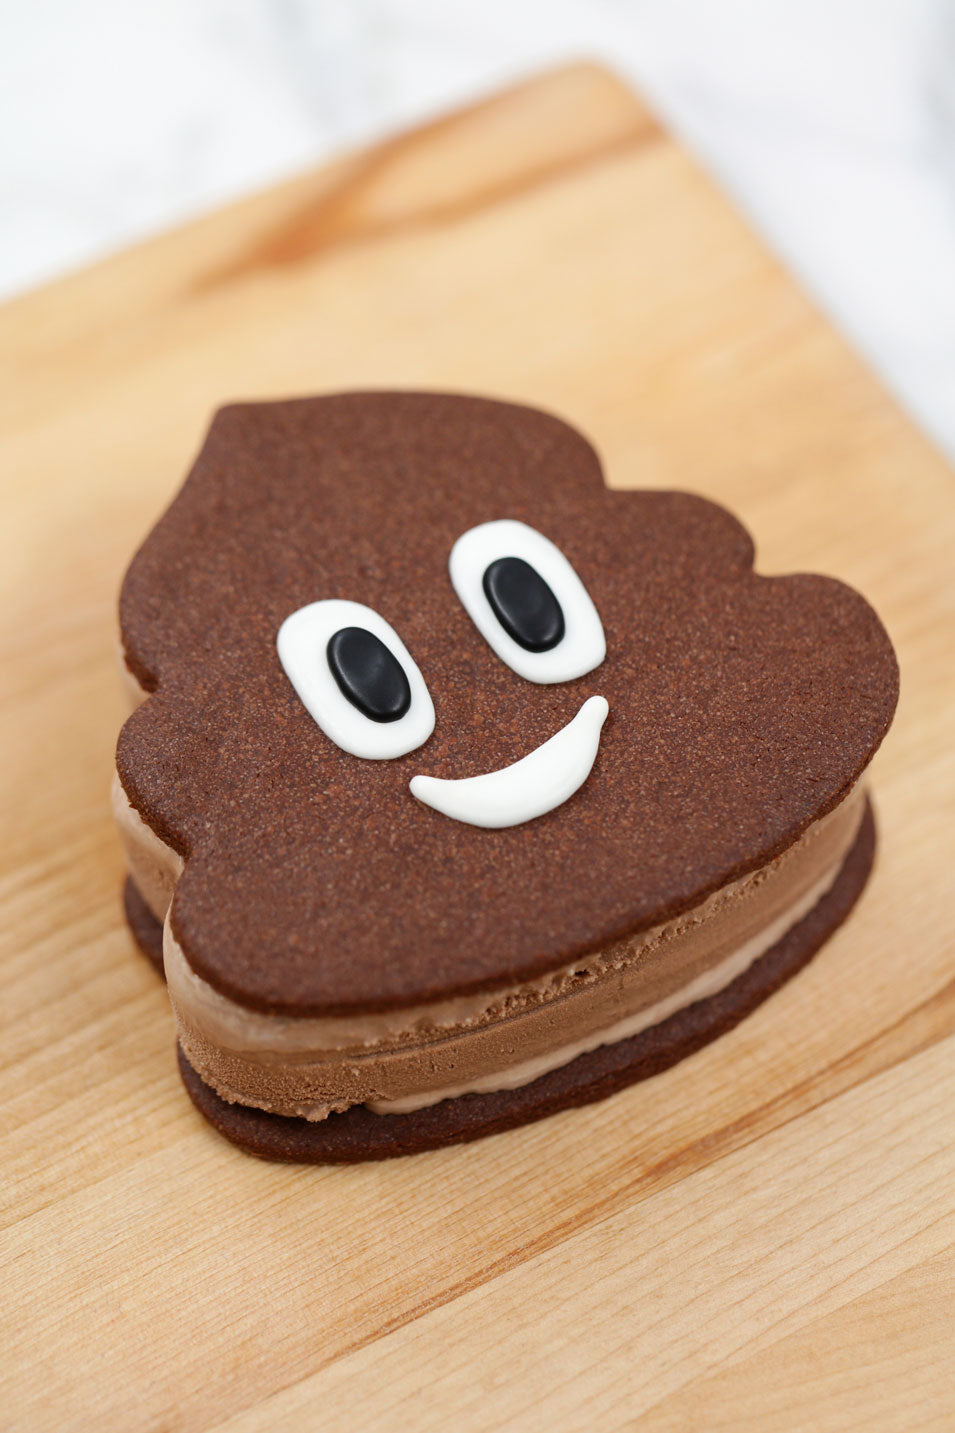 poo+emoji+ice+cream+sandwich+1